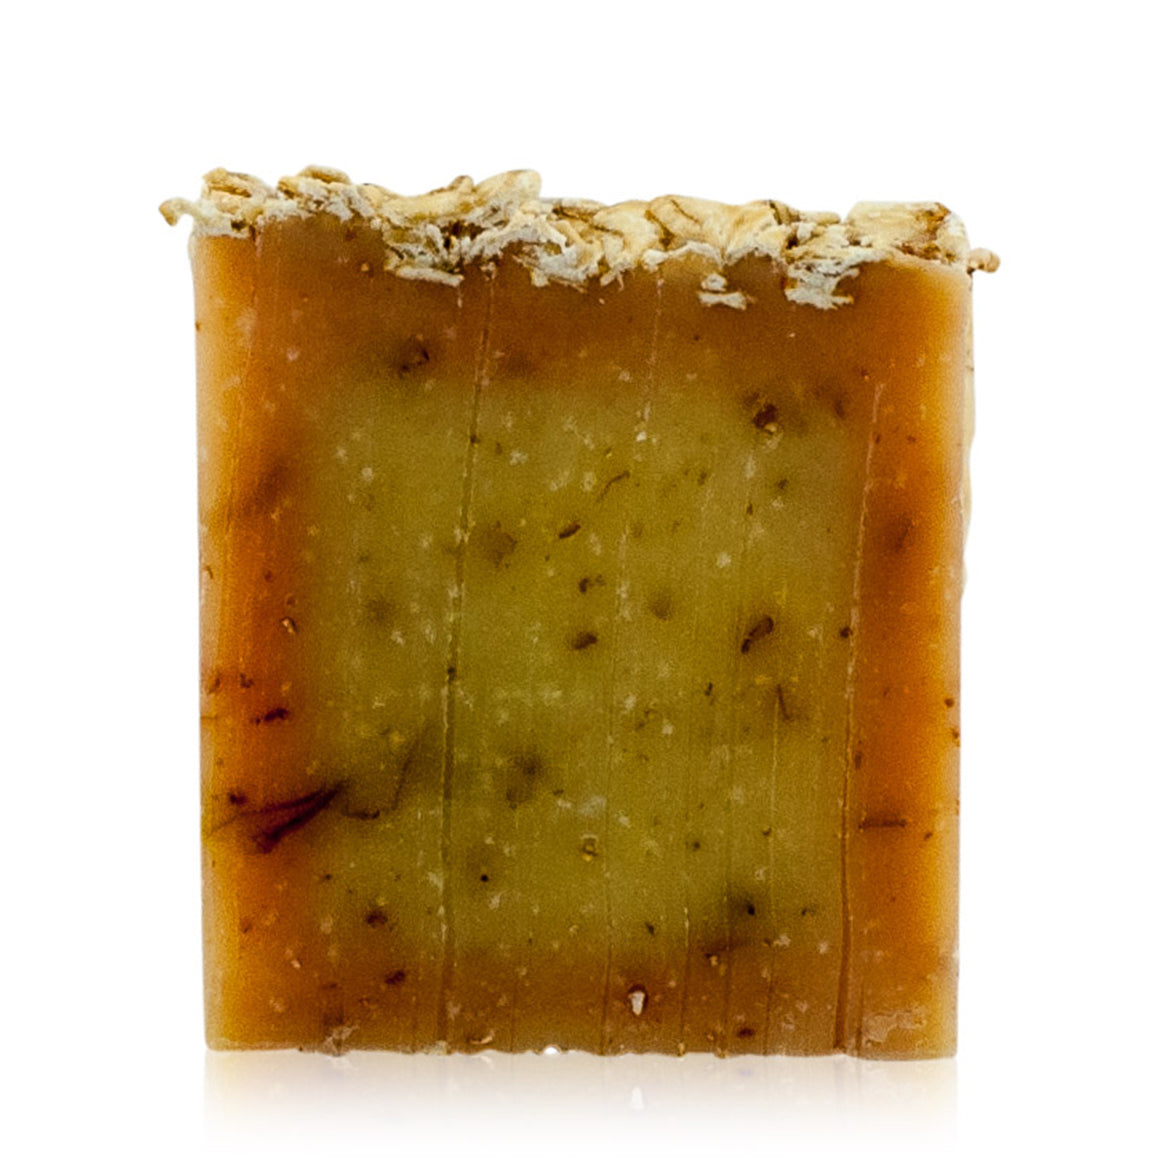 Natural vegan skincare Oats butter soap bar, handmade by WiDEYE in Rye.